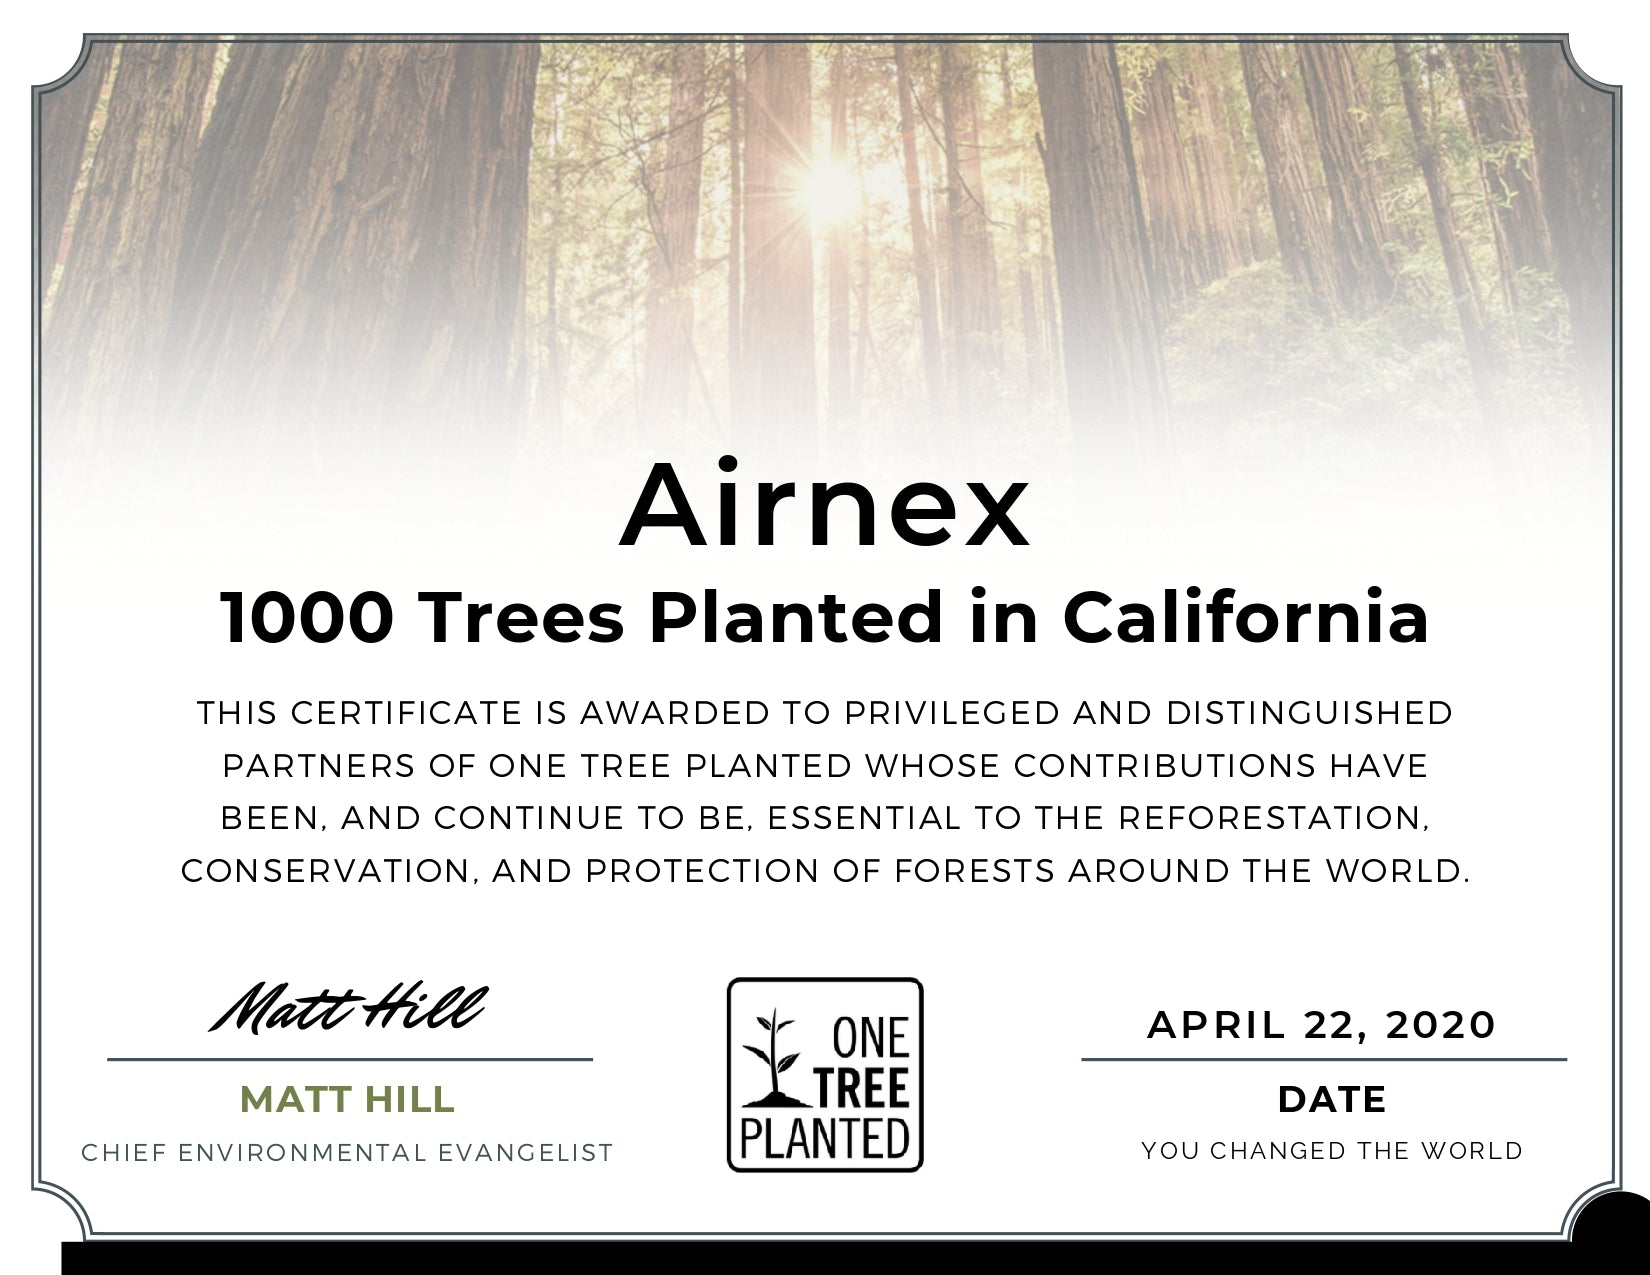 Airnex one thousand trees planted